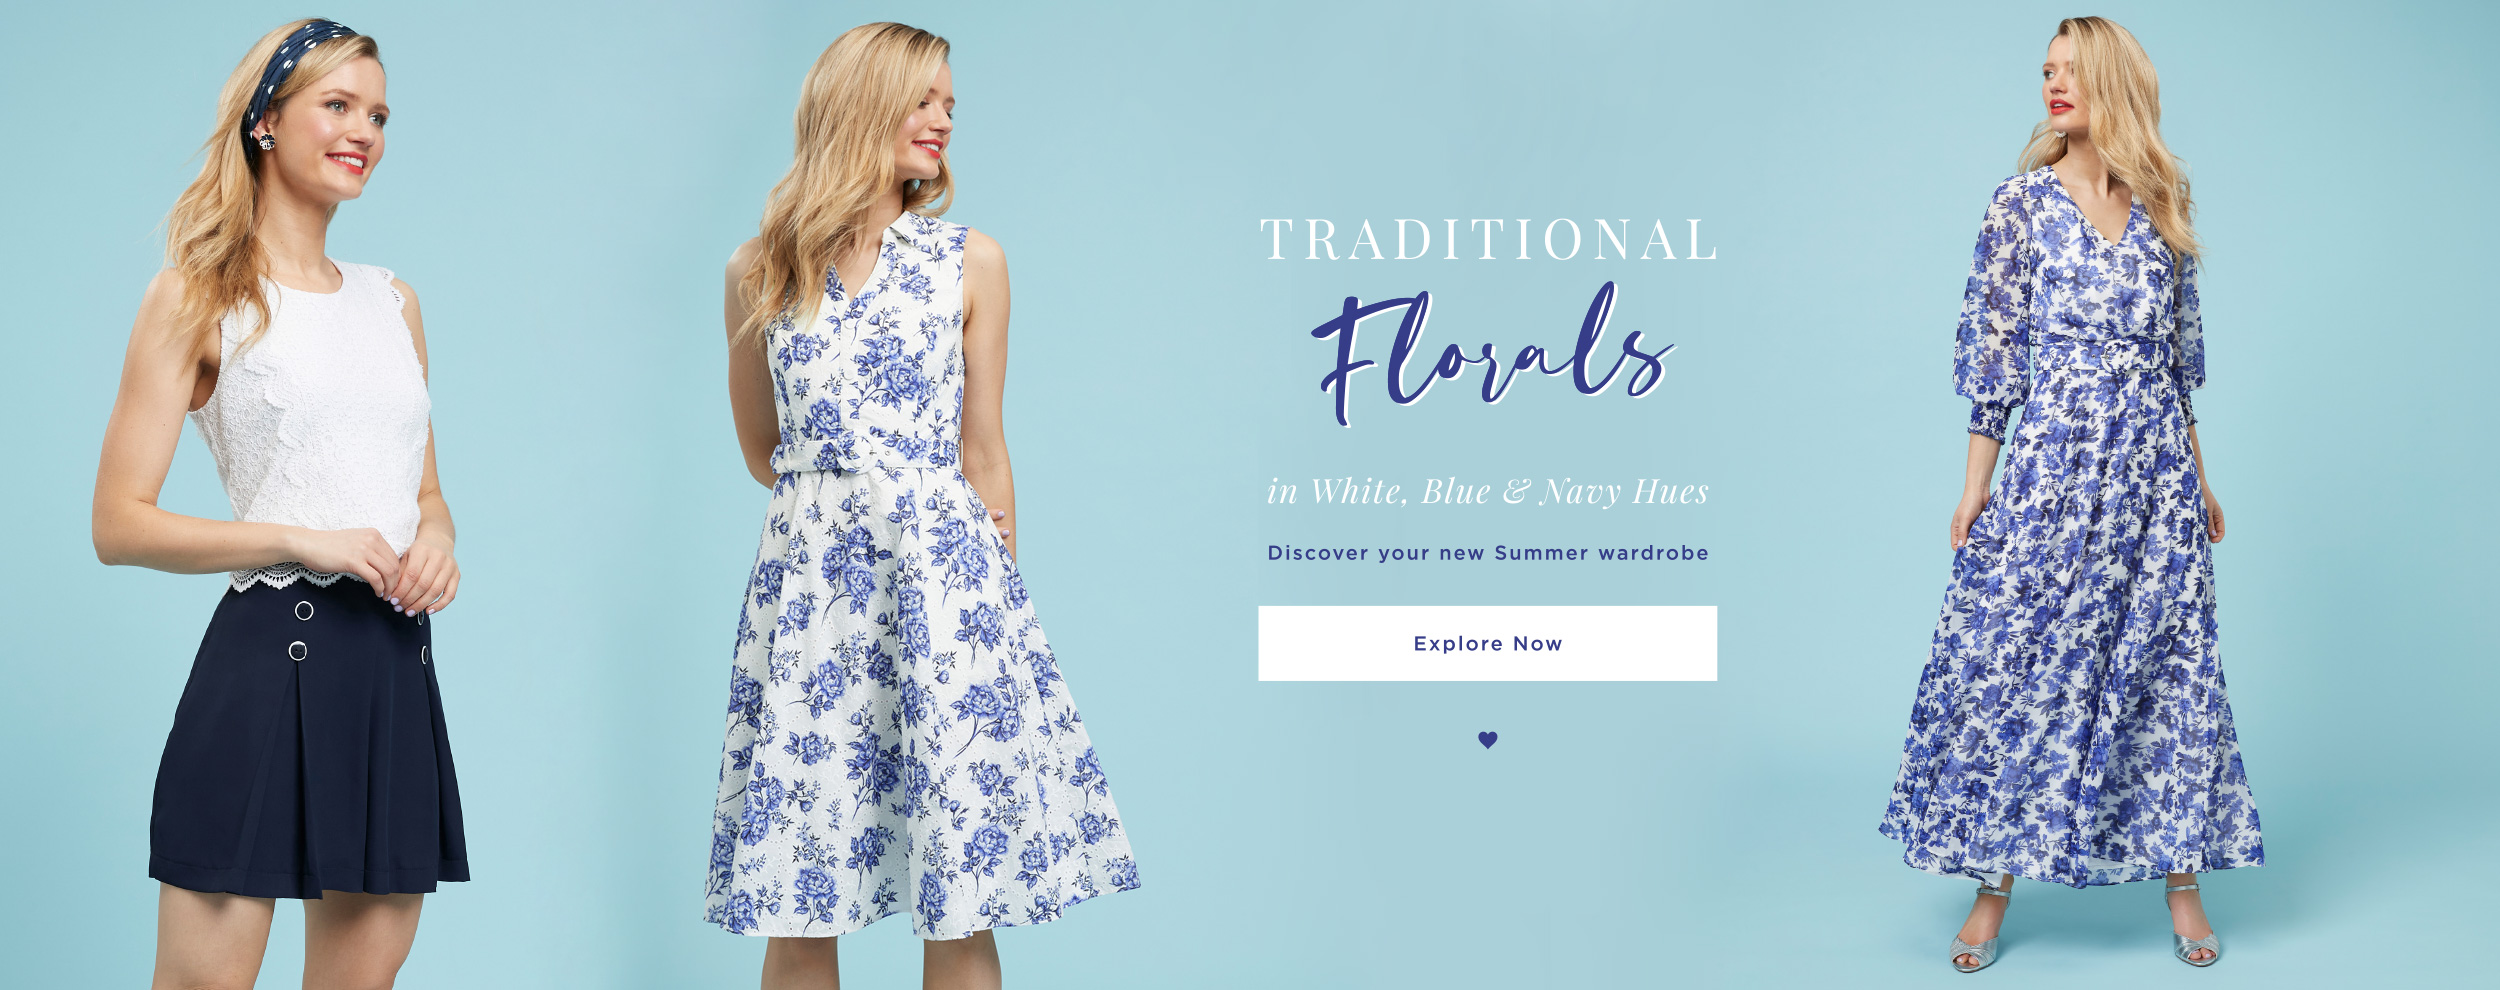 Traditional Florals